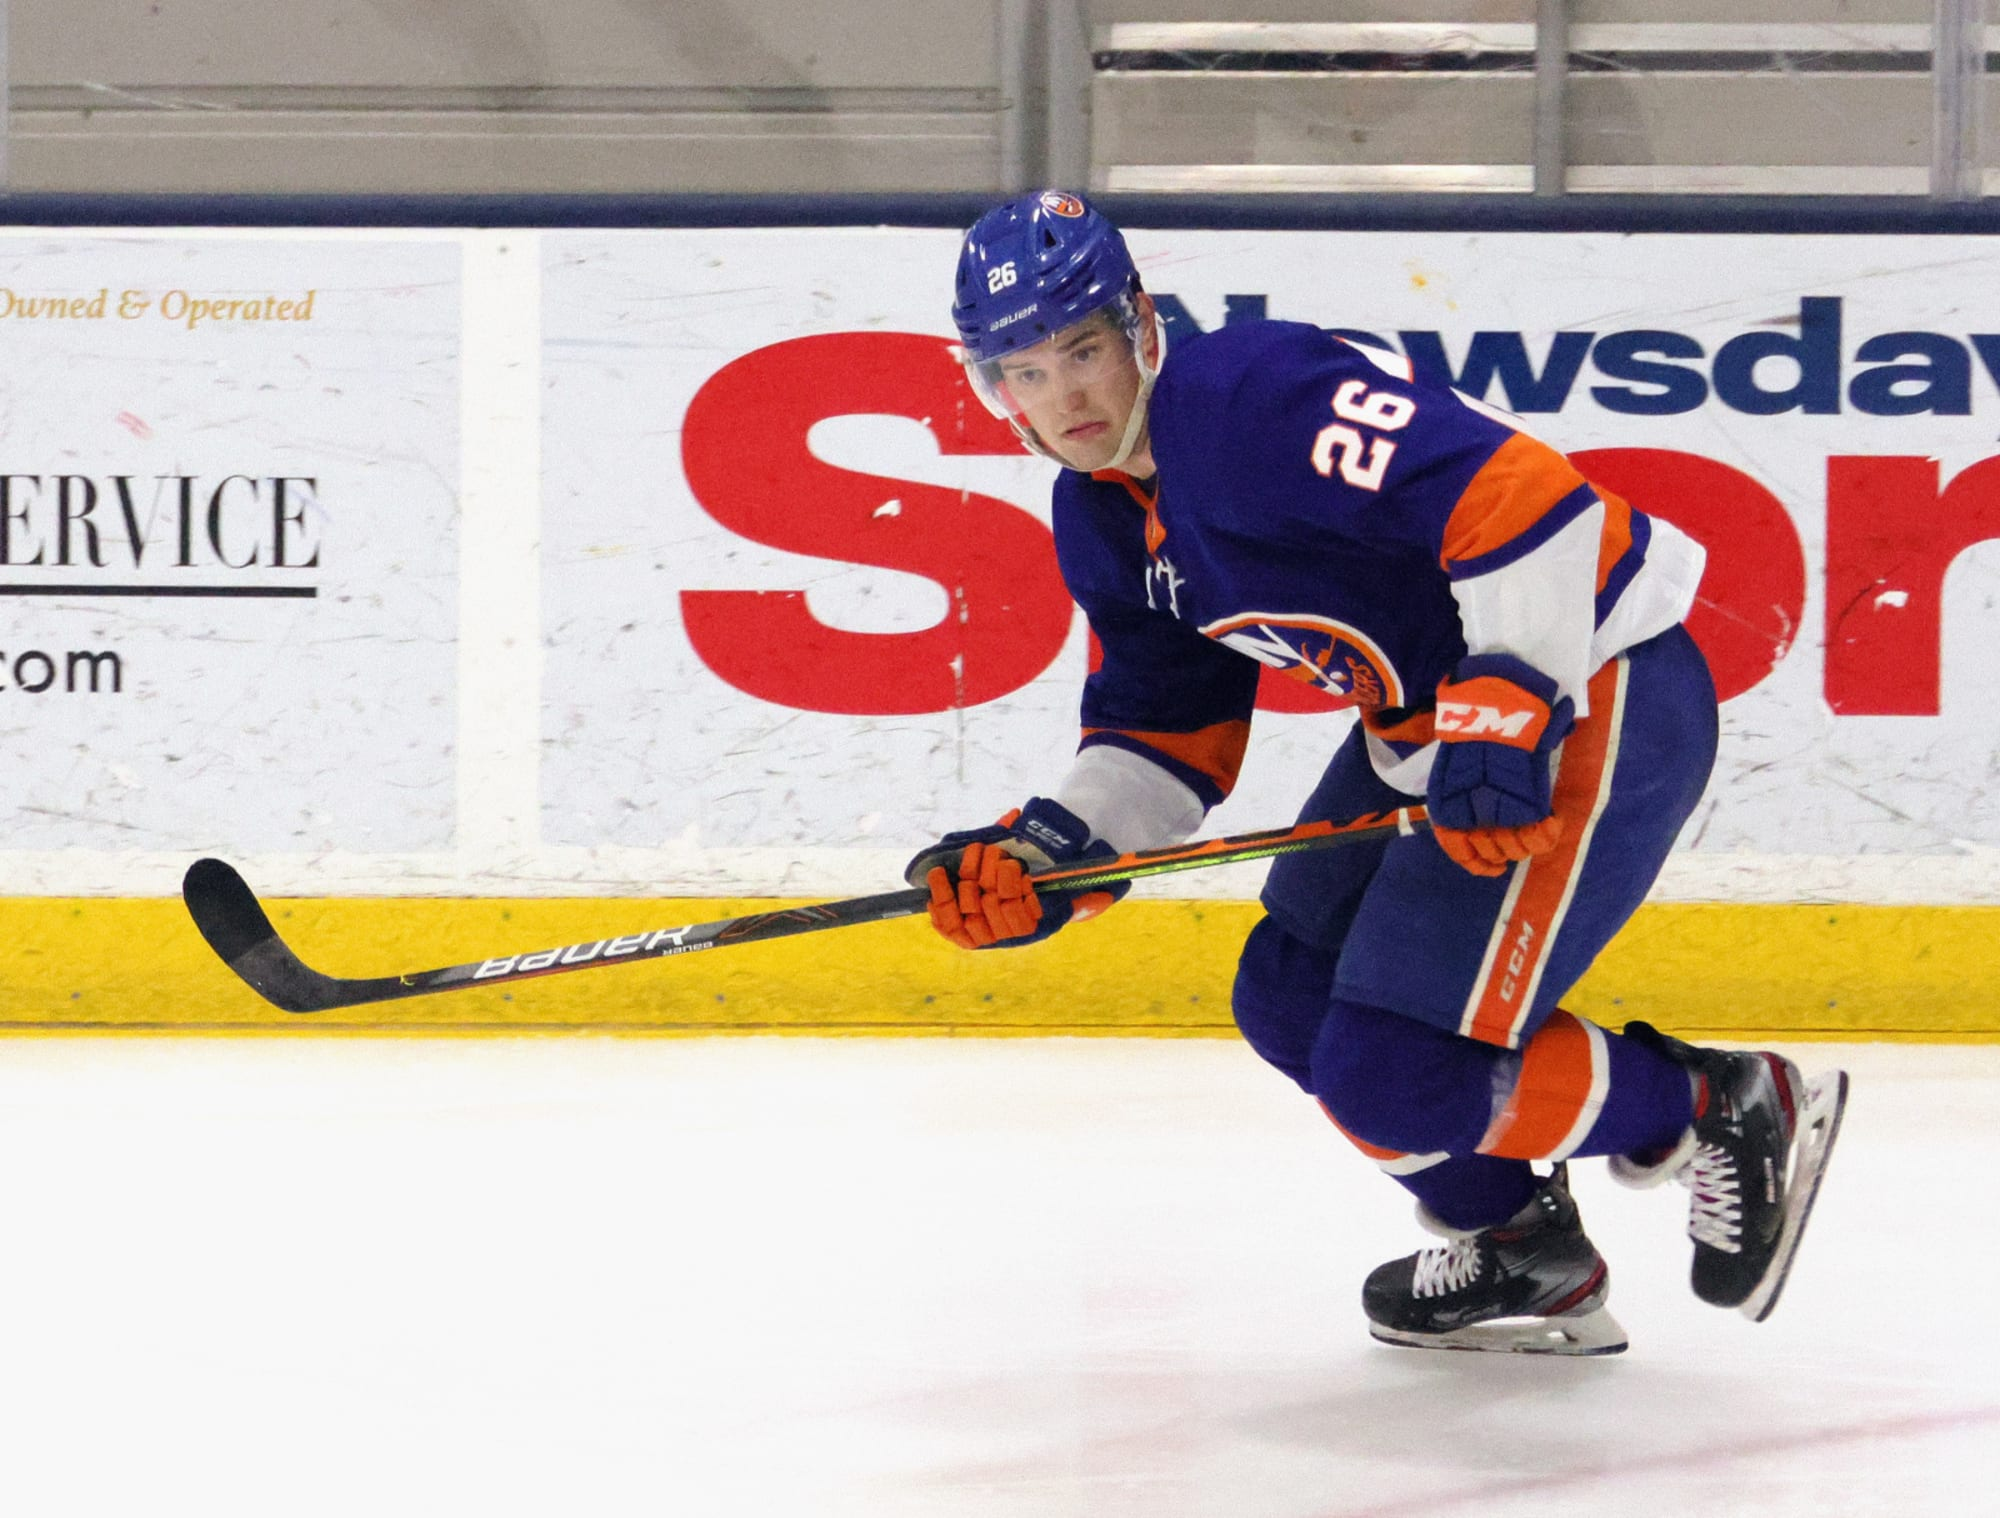 Islanders: Oliver Wahlstrom getting reps on third line at practice